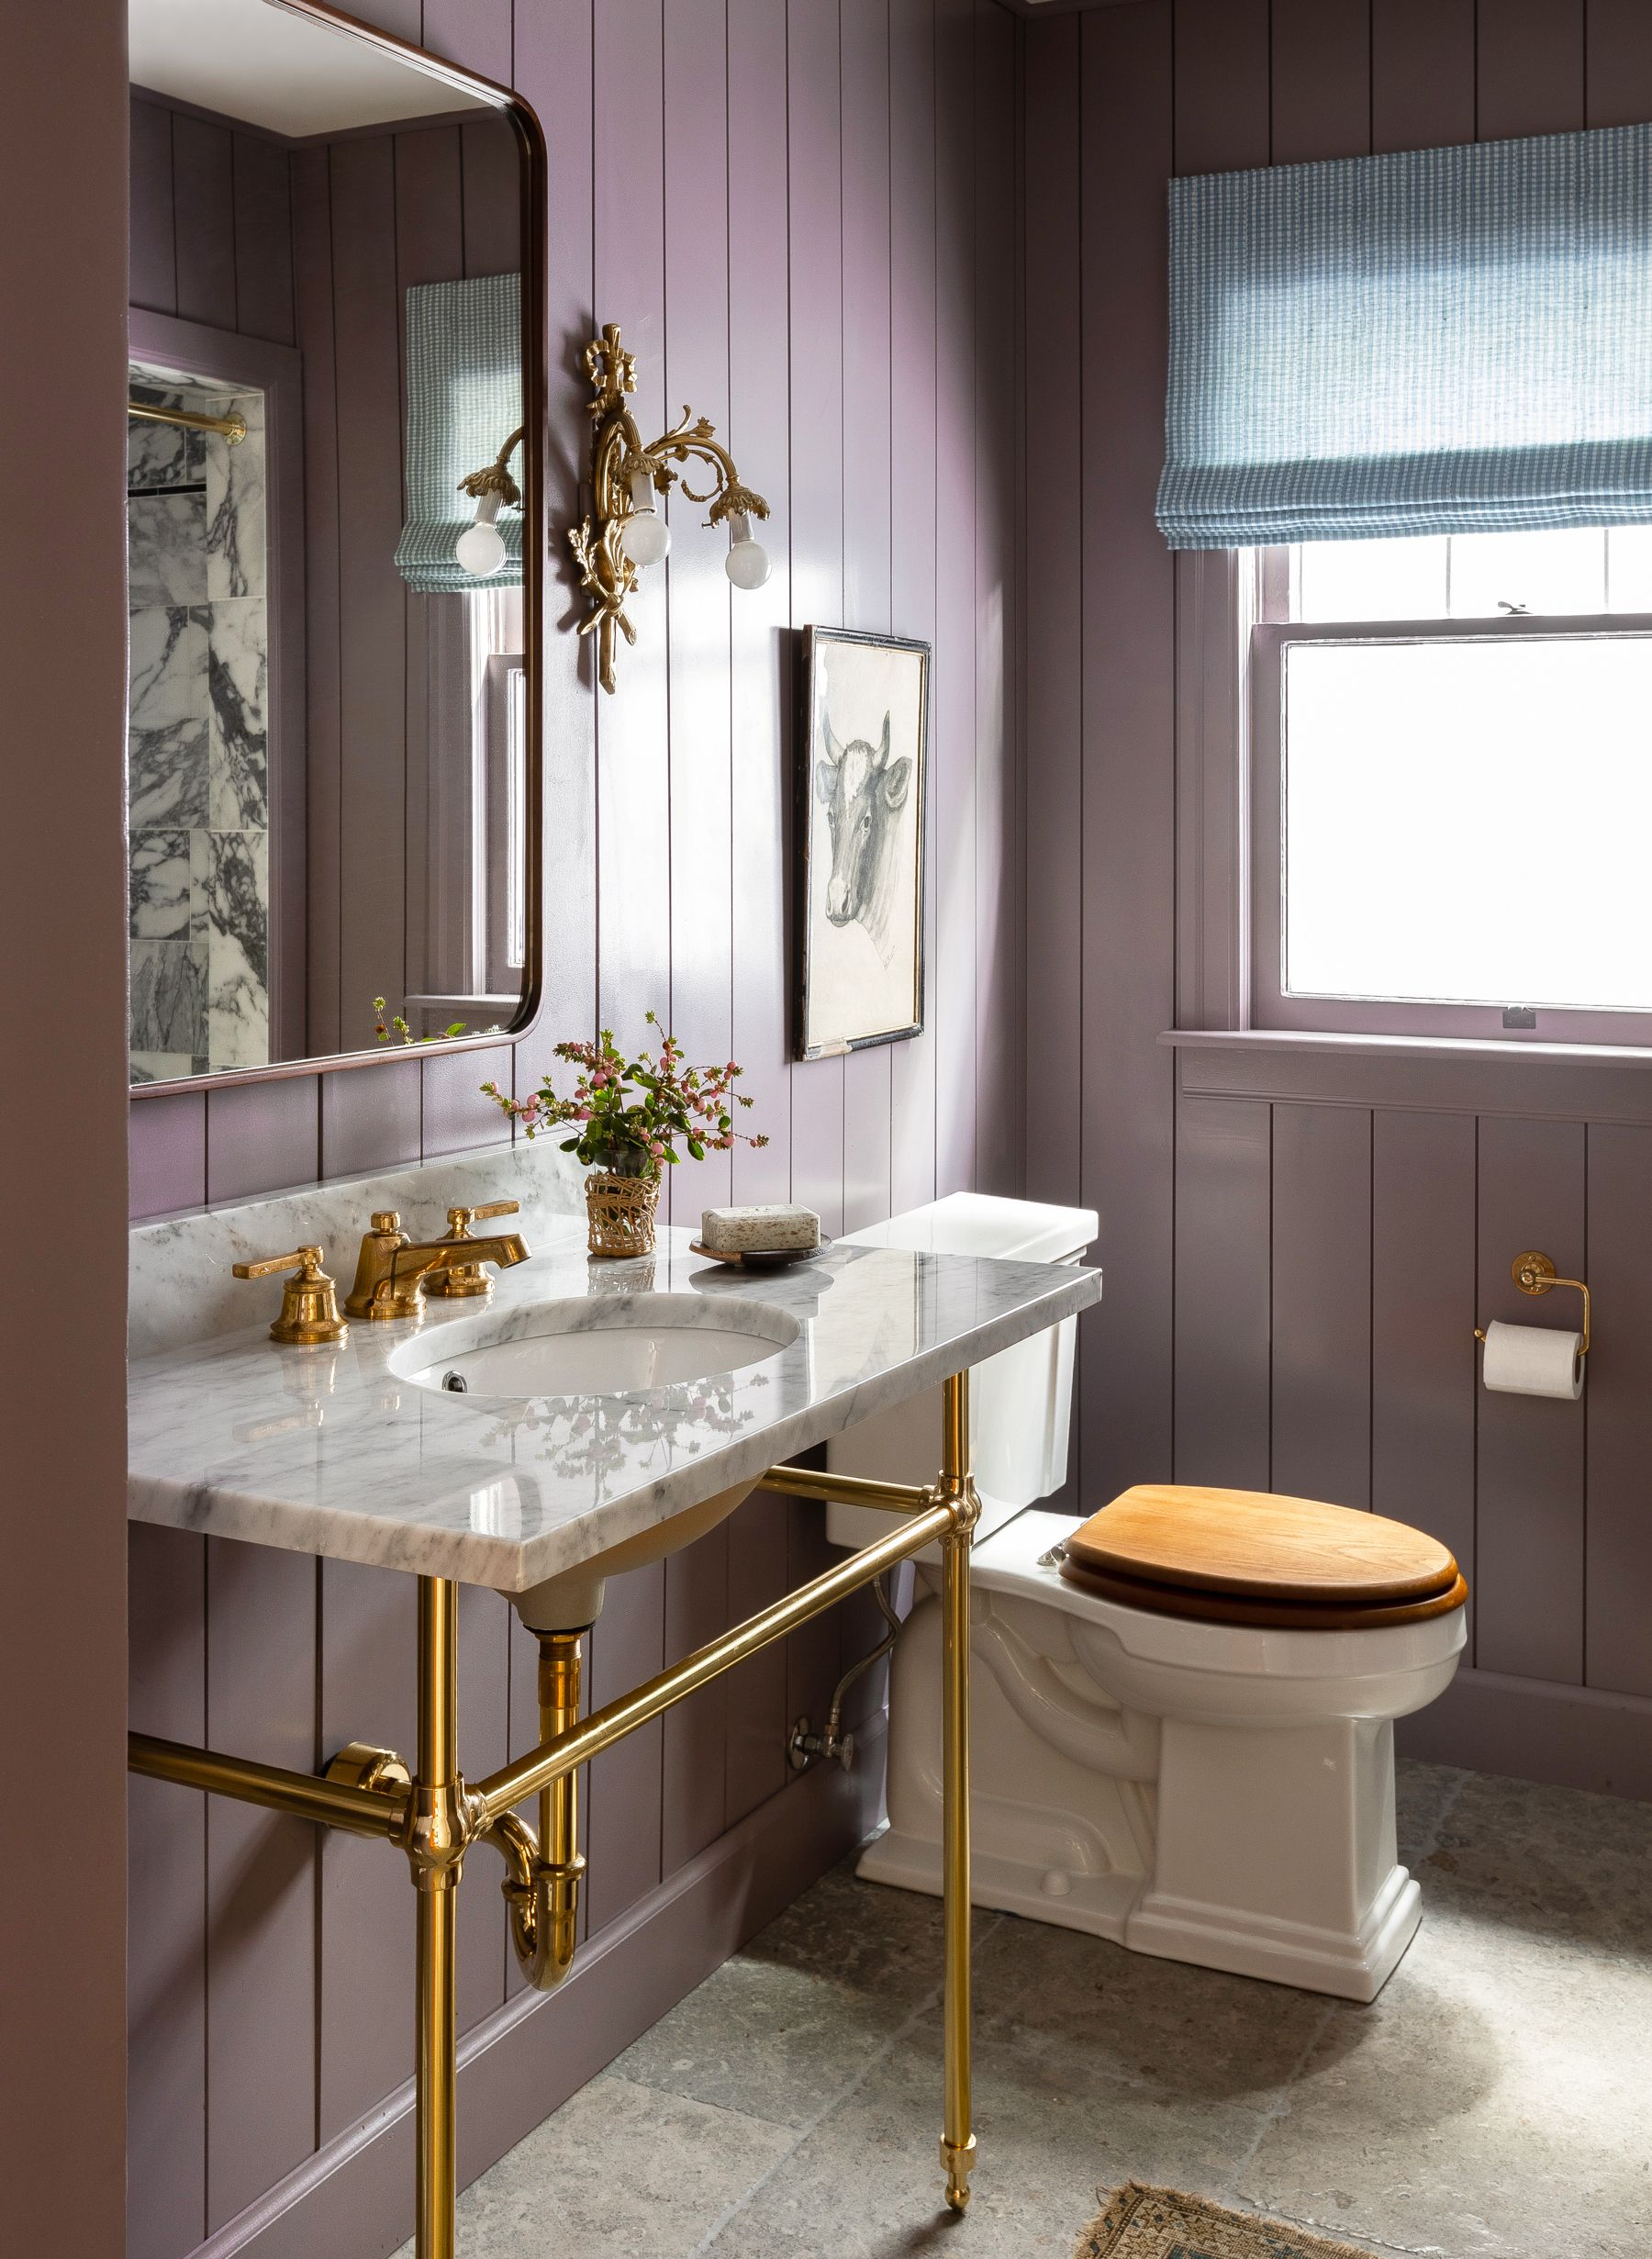 4 Best Bathroom Colors - Top Paint Colors for Bathroom Walls